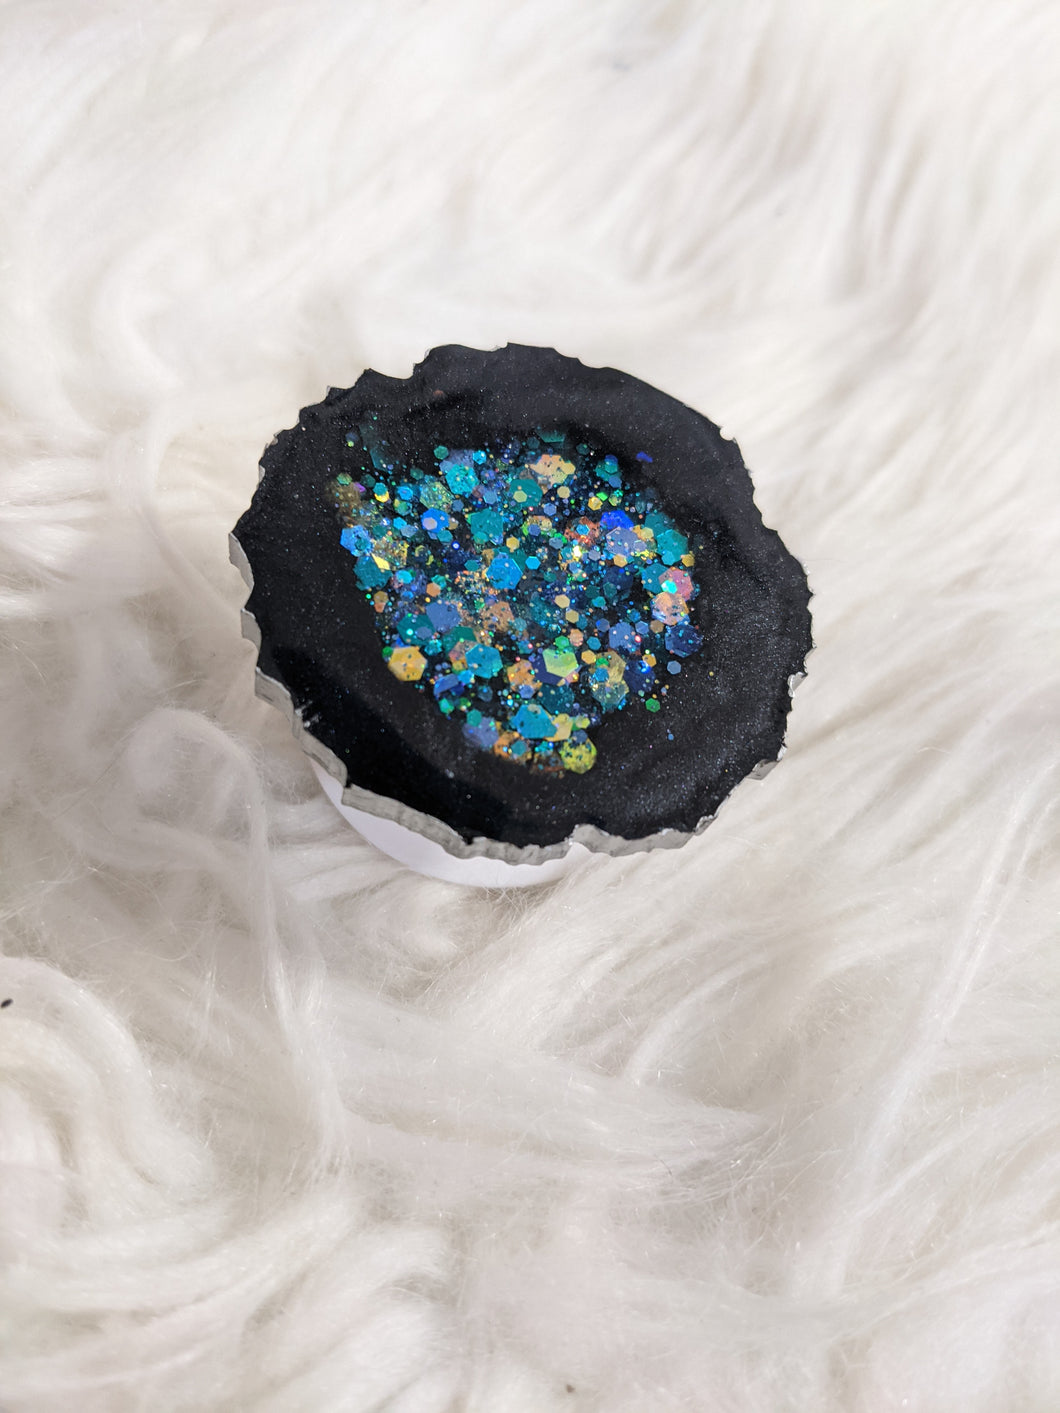 Blue/Black Geode Phone Grip